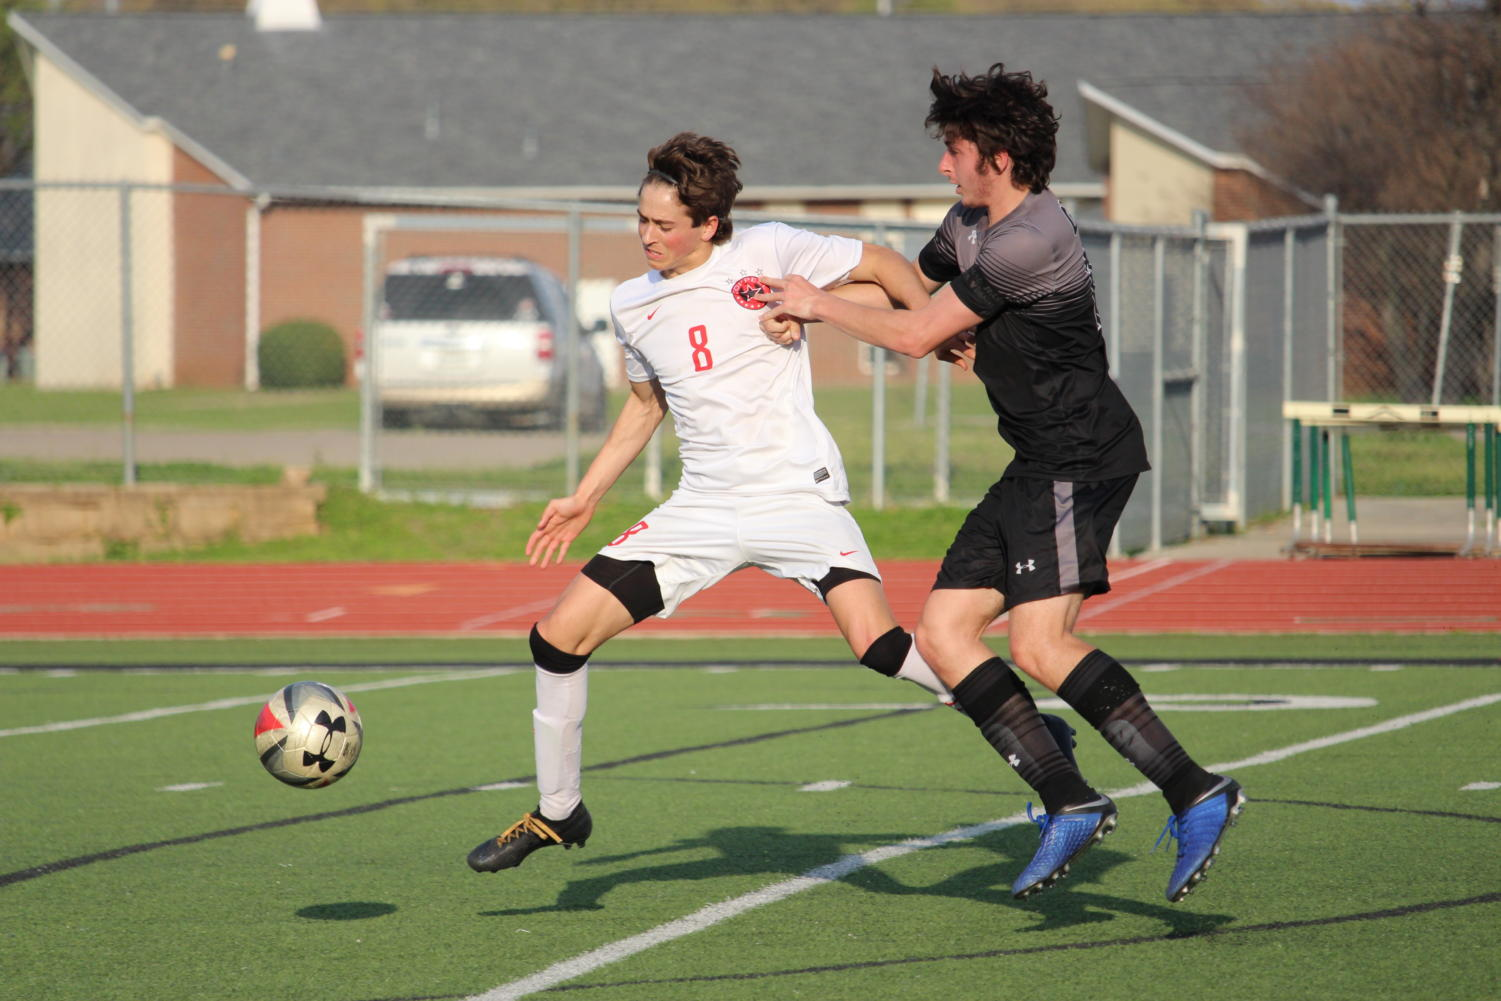 Coppell+senior+forward+Joe+Ruedi+fights+for+possession++on+Friday+at+Falcon+Stadium+at+Lake+Dallas.+After+a+scoreless+regulation+and+two+overtime+periods%2C+Coppell+won%2C++0-0+%284-3%29%2C+in+the+Class+6A+Region+I+bi-district+match.